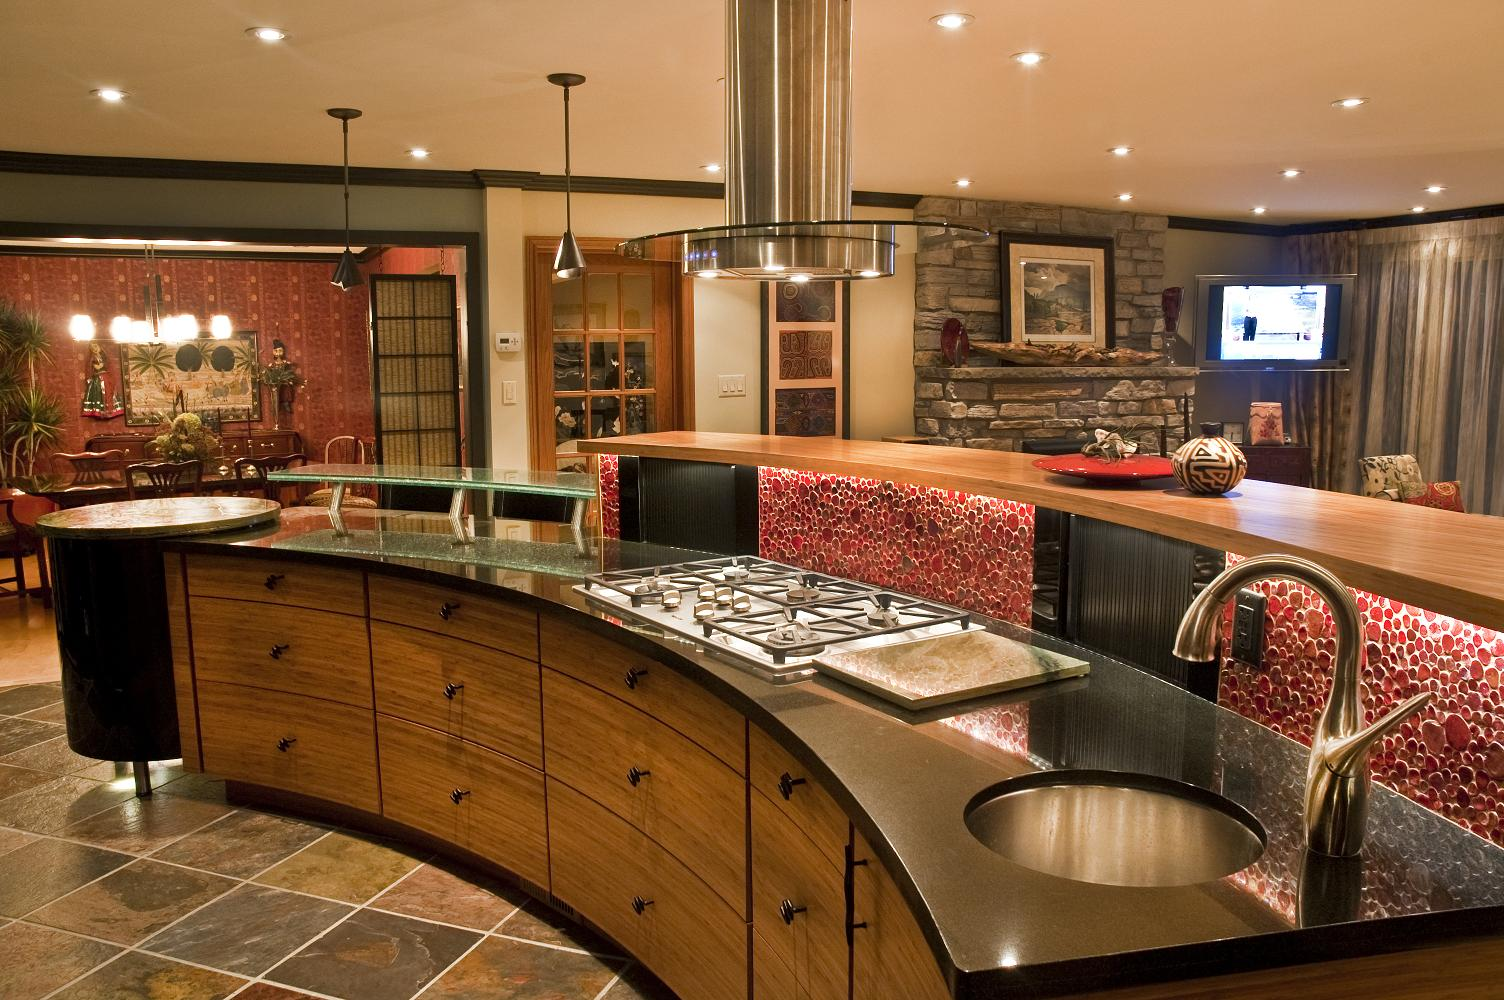 Eclectic kitchen design with curned island, black countertops, wood cabinets, and a floating hood fan